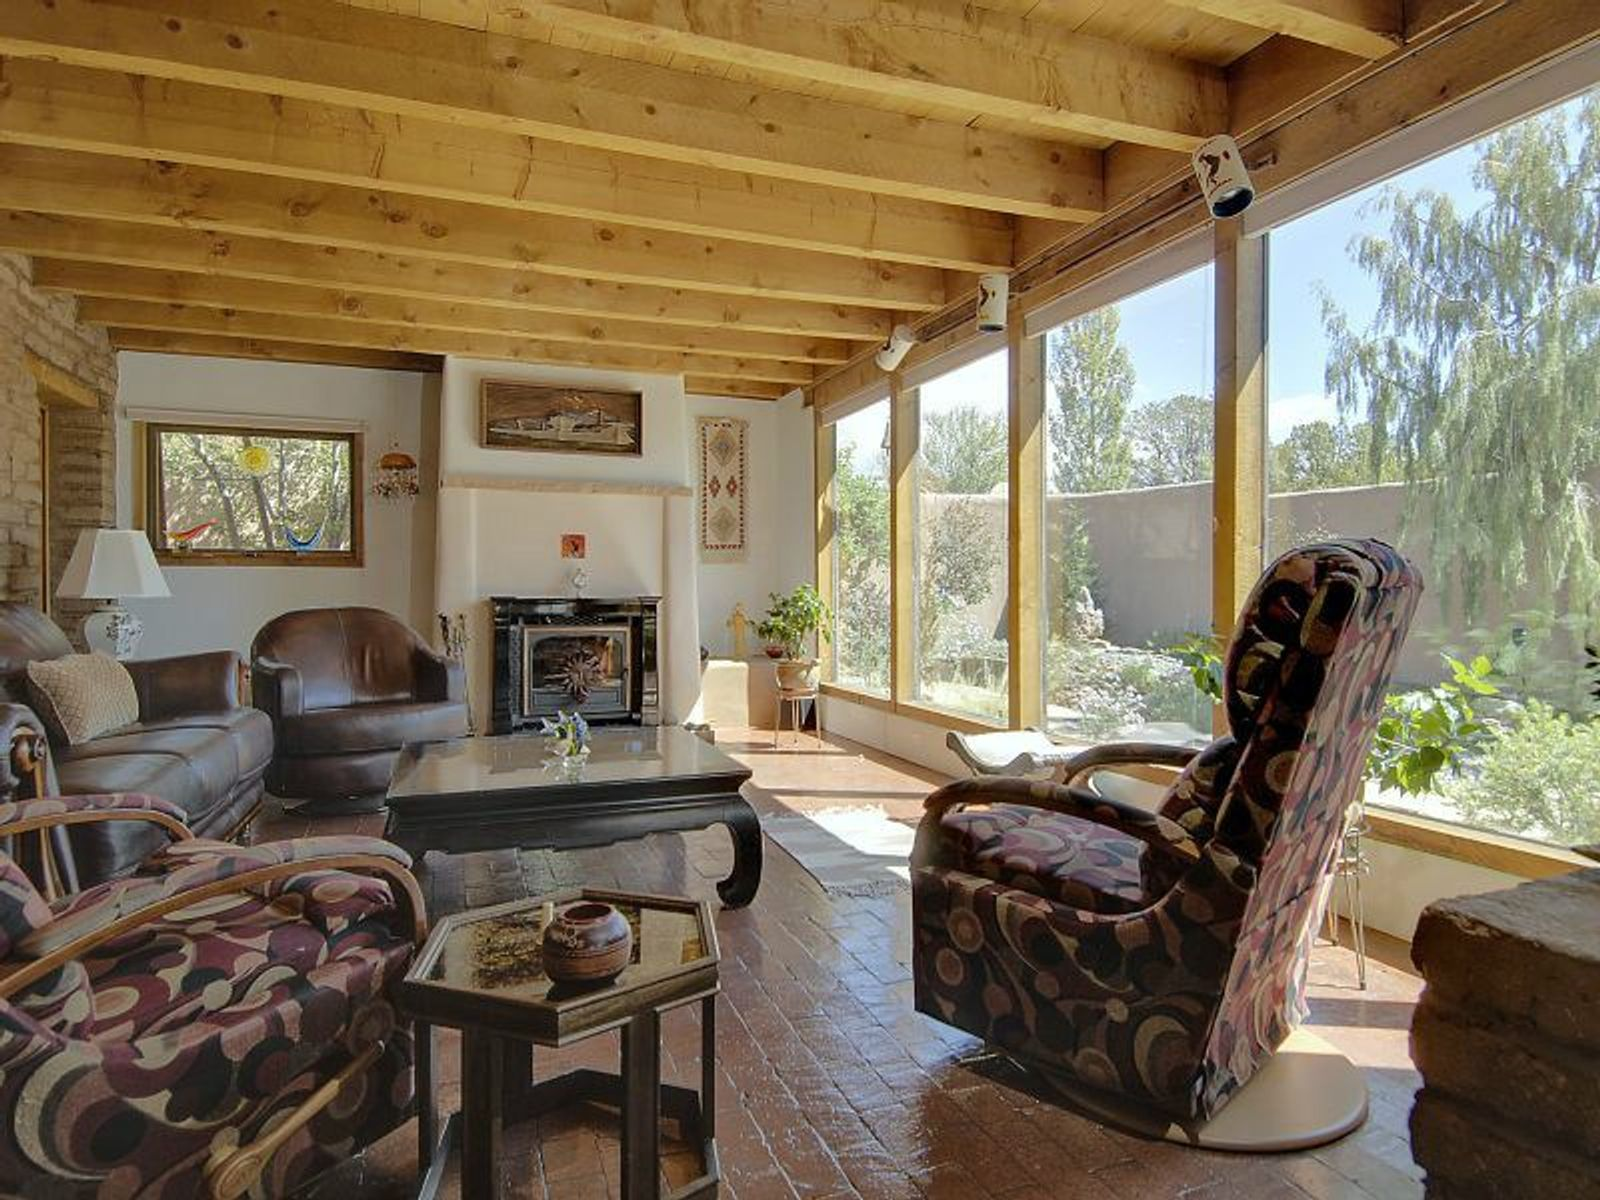 Livingroom with view of Fireplace with insert and